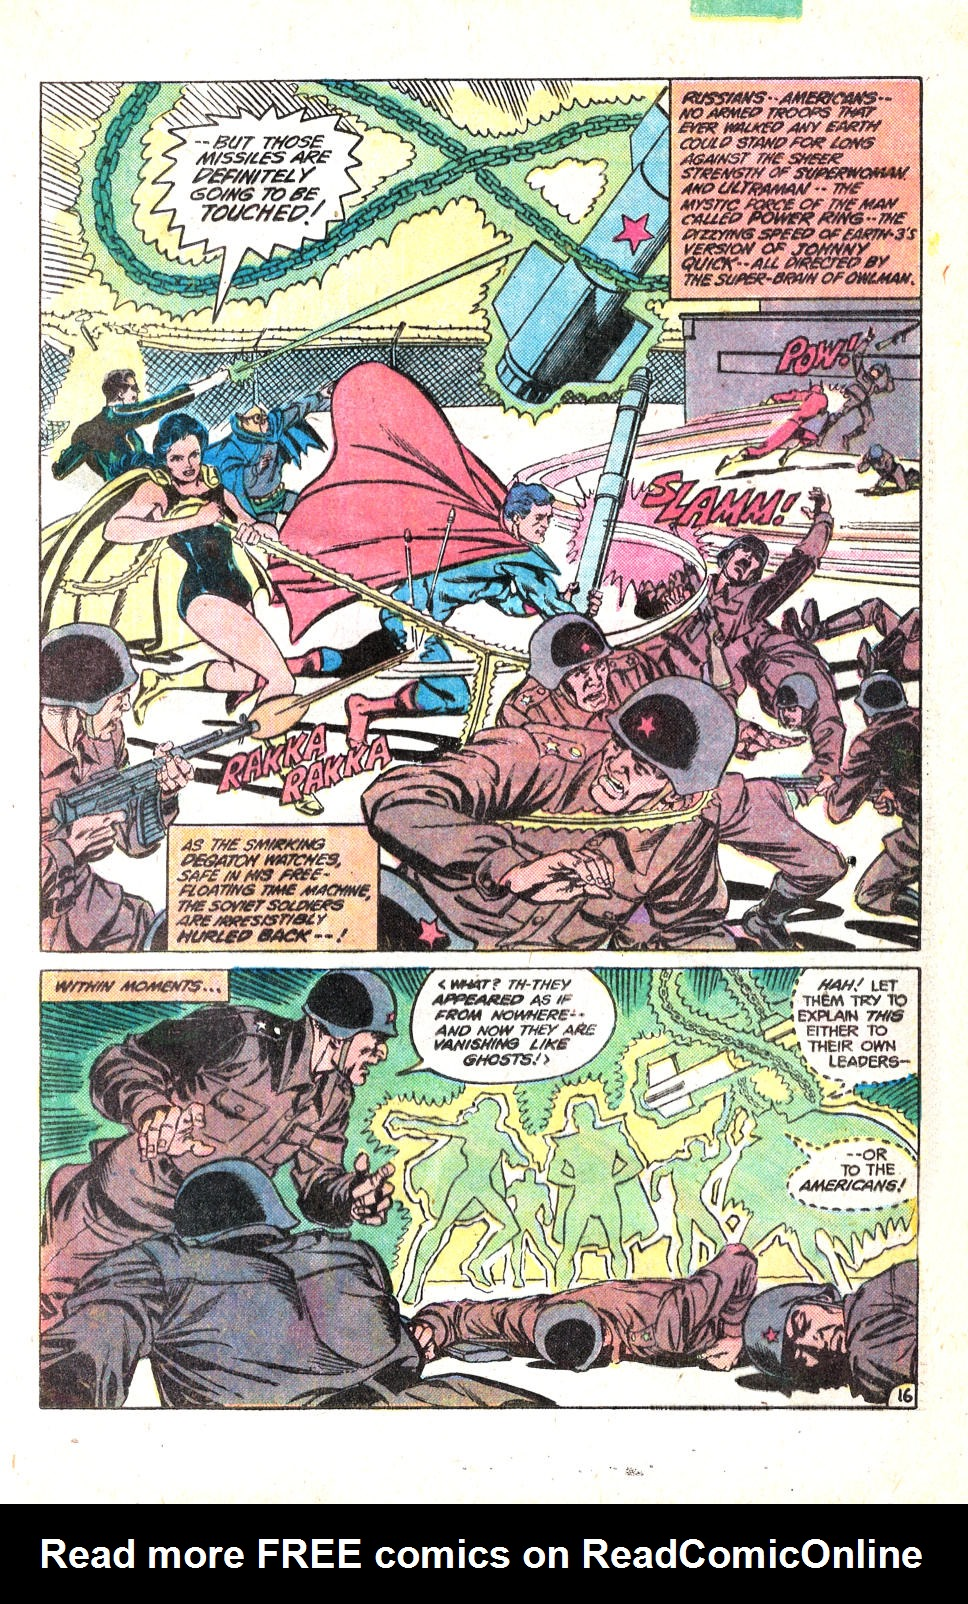 Read online All-Star Squadron comic -  Issue #14 - 20